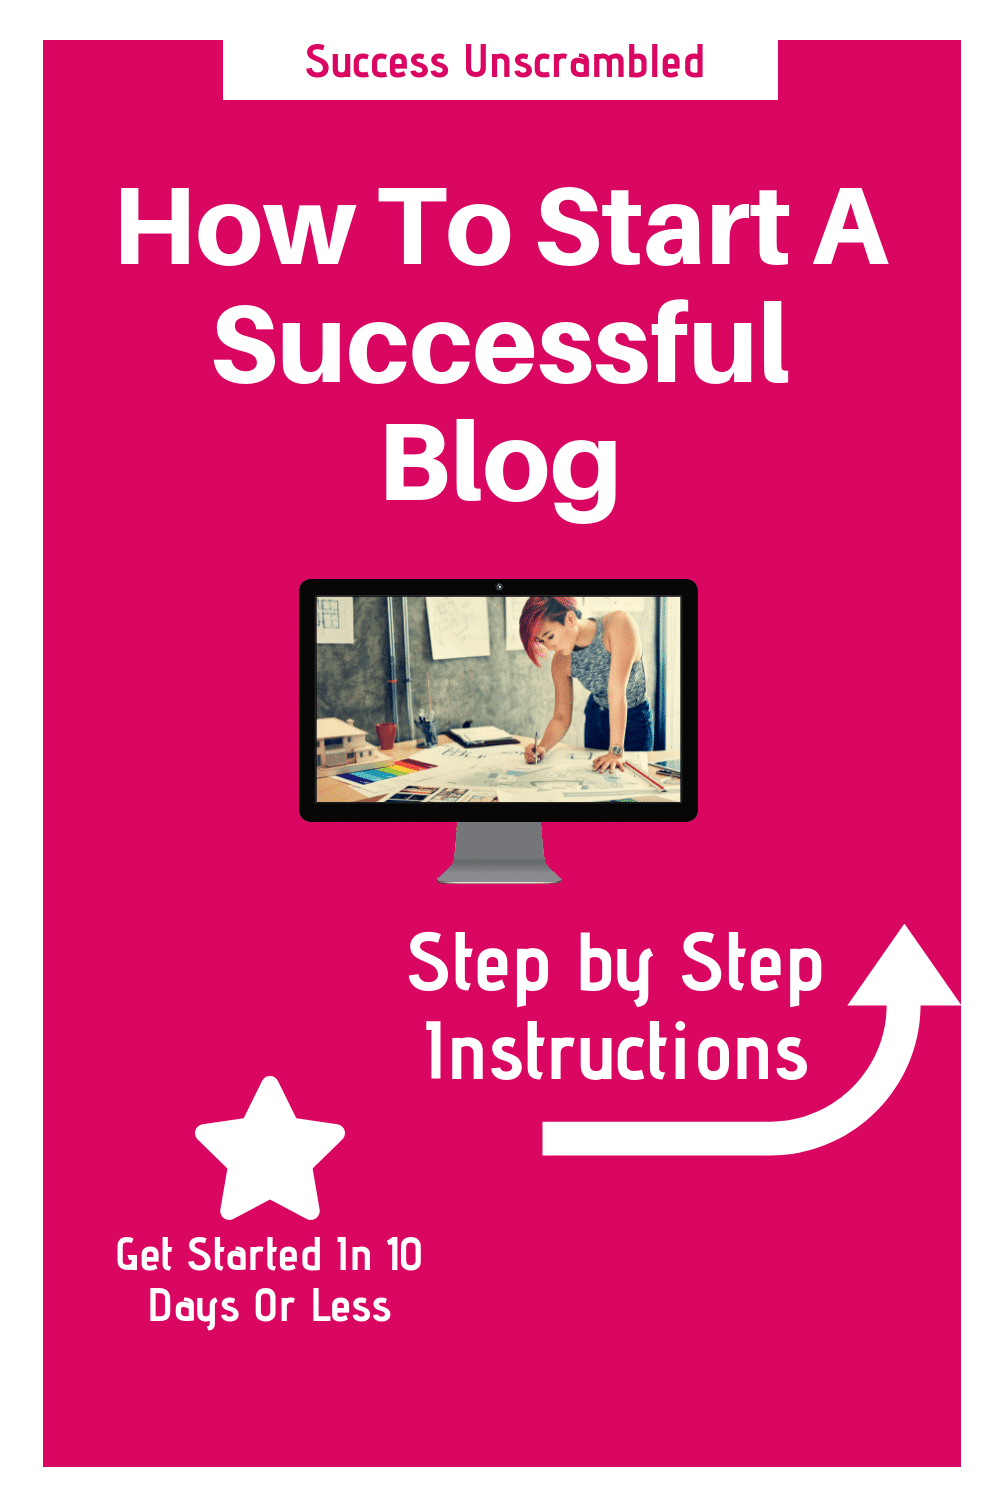 Start a Successful Blog - 1000x1500